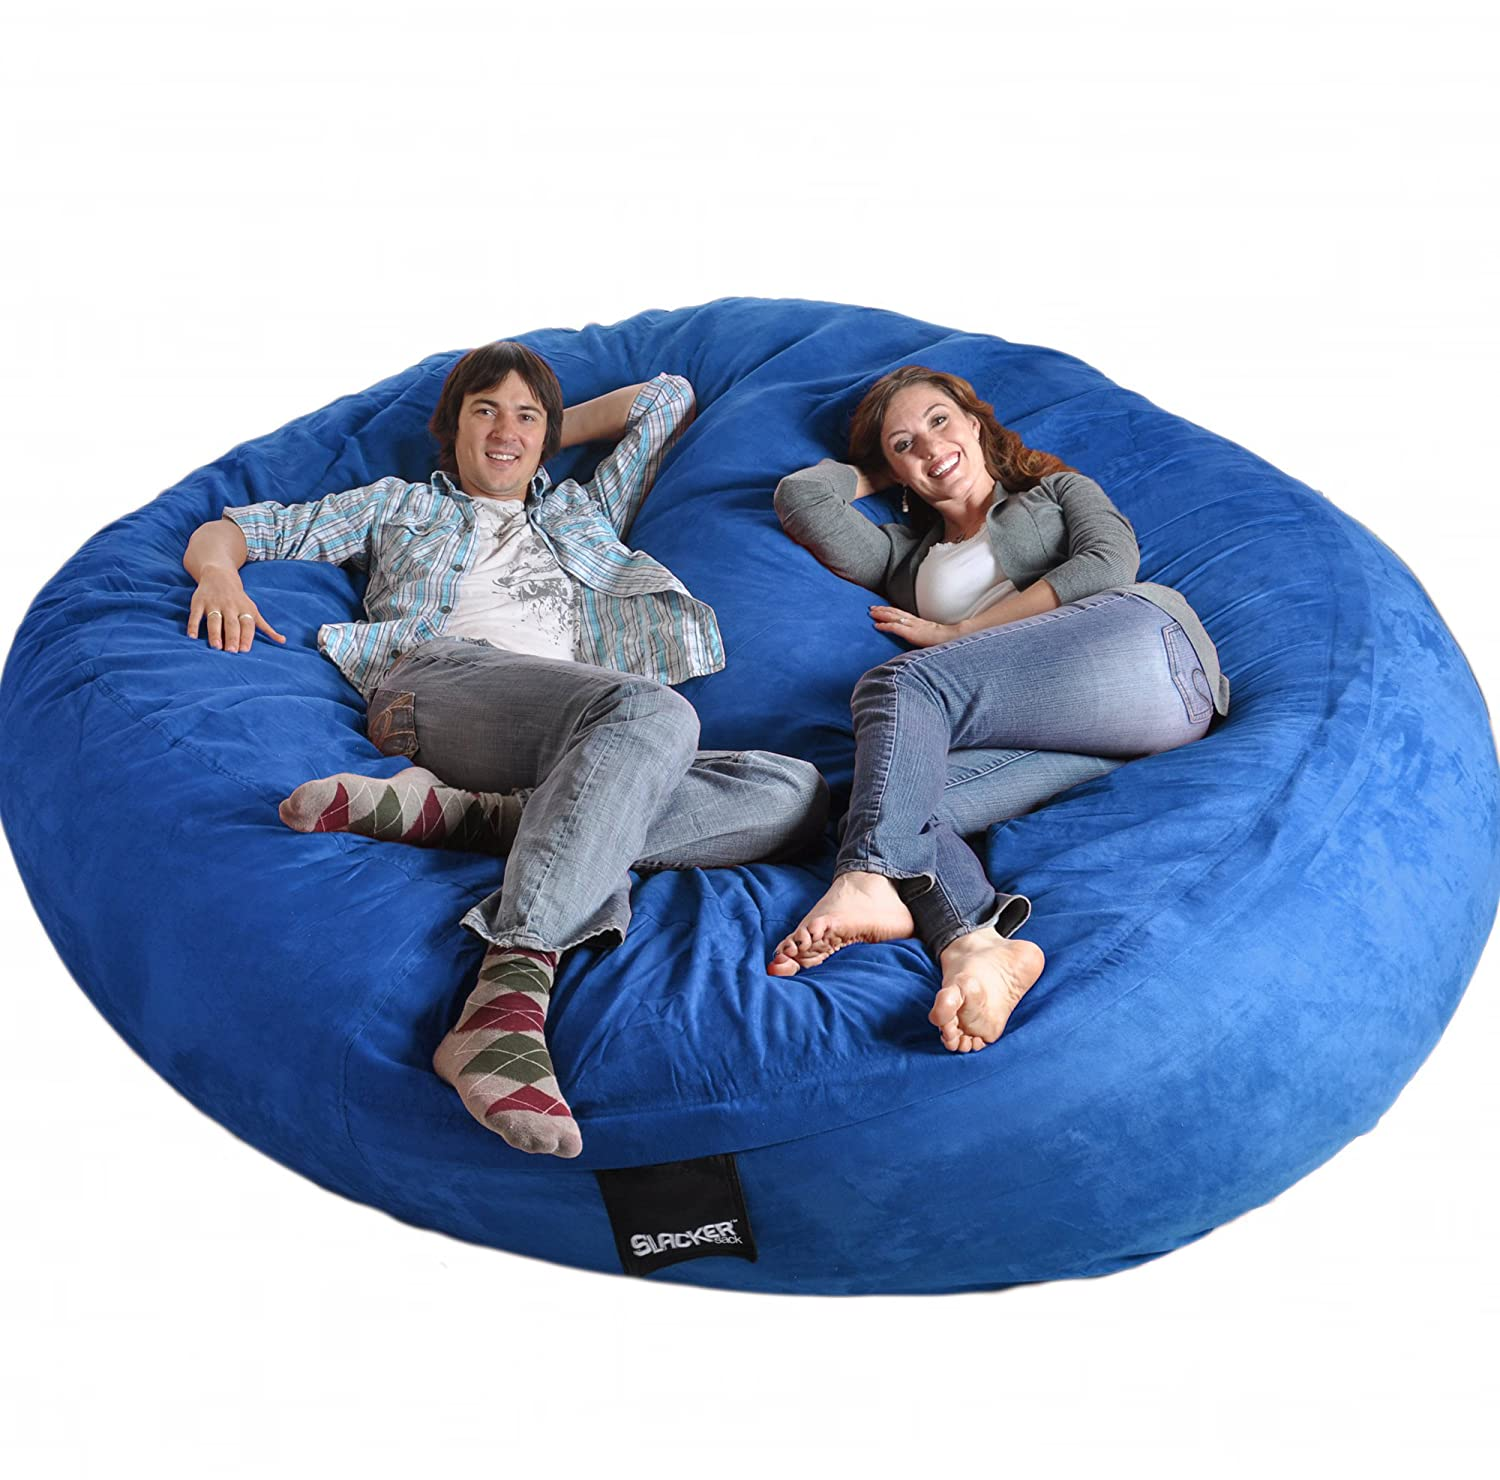 Giant bean bag chairs for adults - Amazon Com 8 Feet Round Royal Blue Xxxl Foam Bean Bag Chair Microfiber Suede Giant Slacker Sack Like Lovesac Biggest Beanbag Kitchen Dining